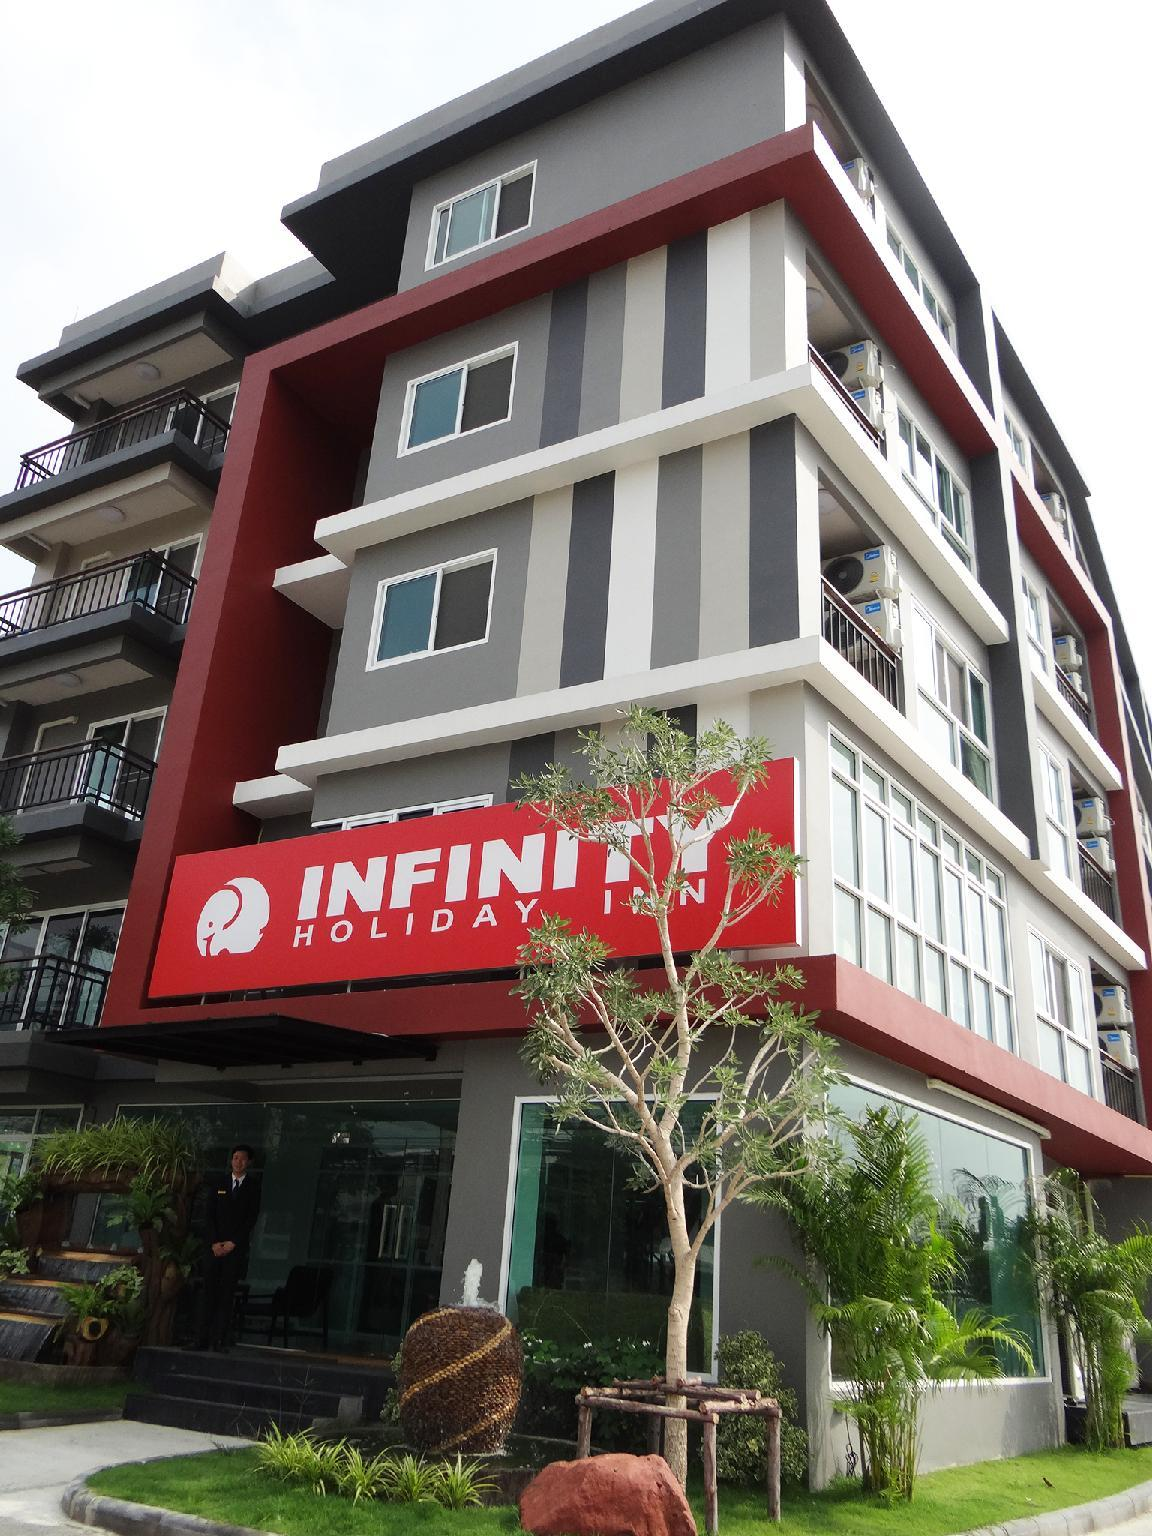 Infinity Holiday Inn, Bung Kum